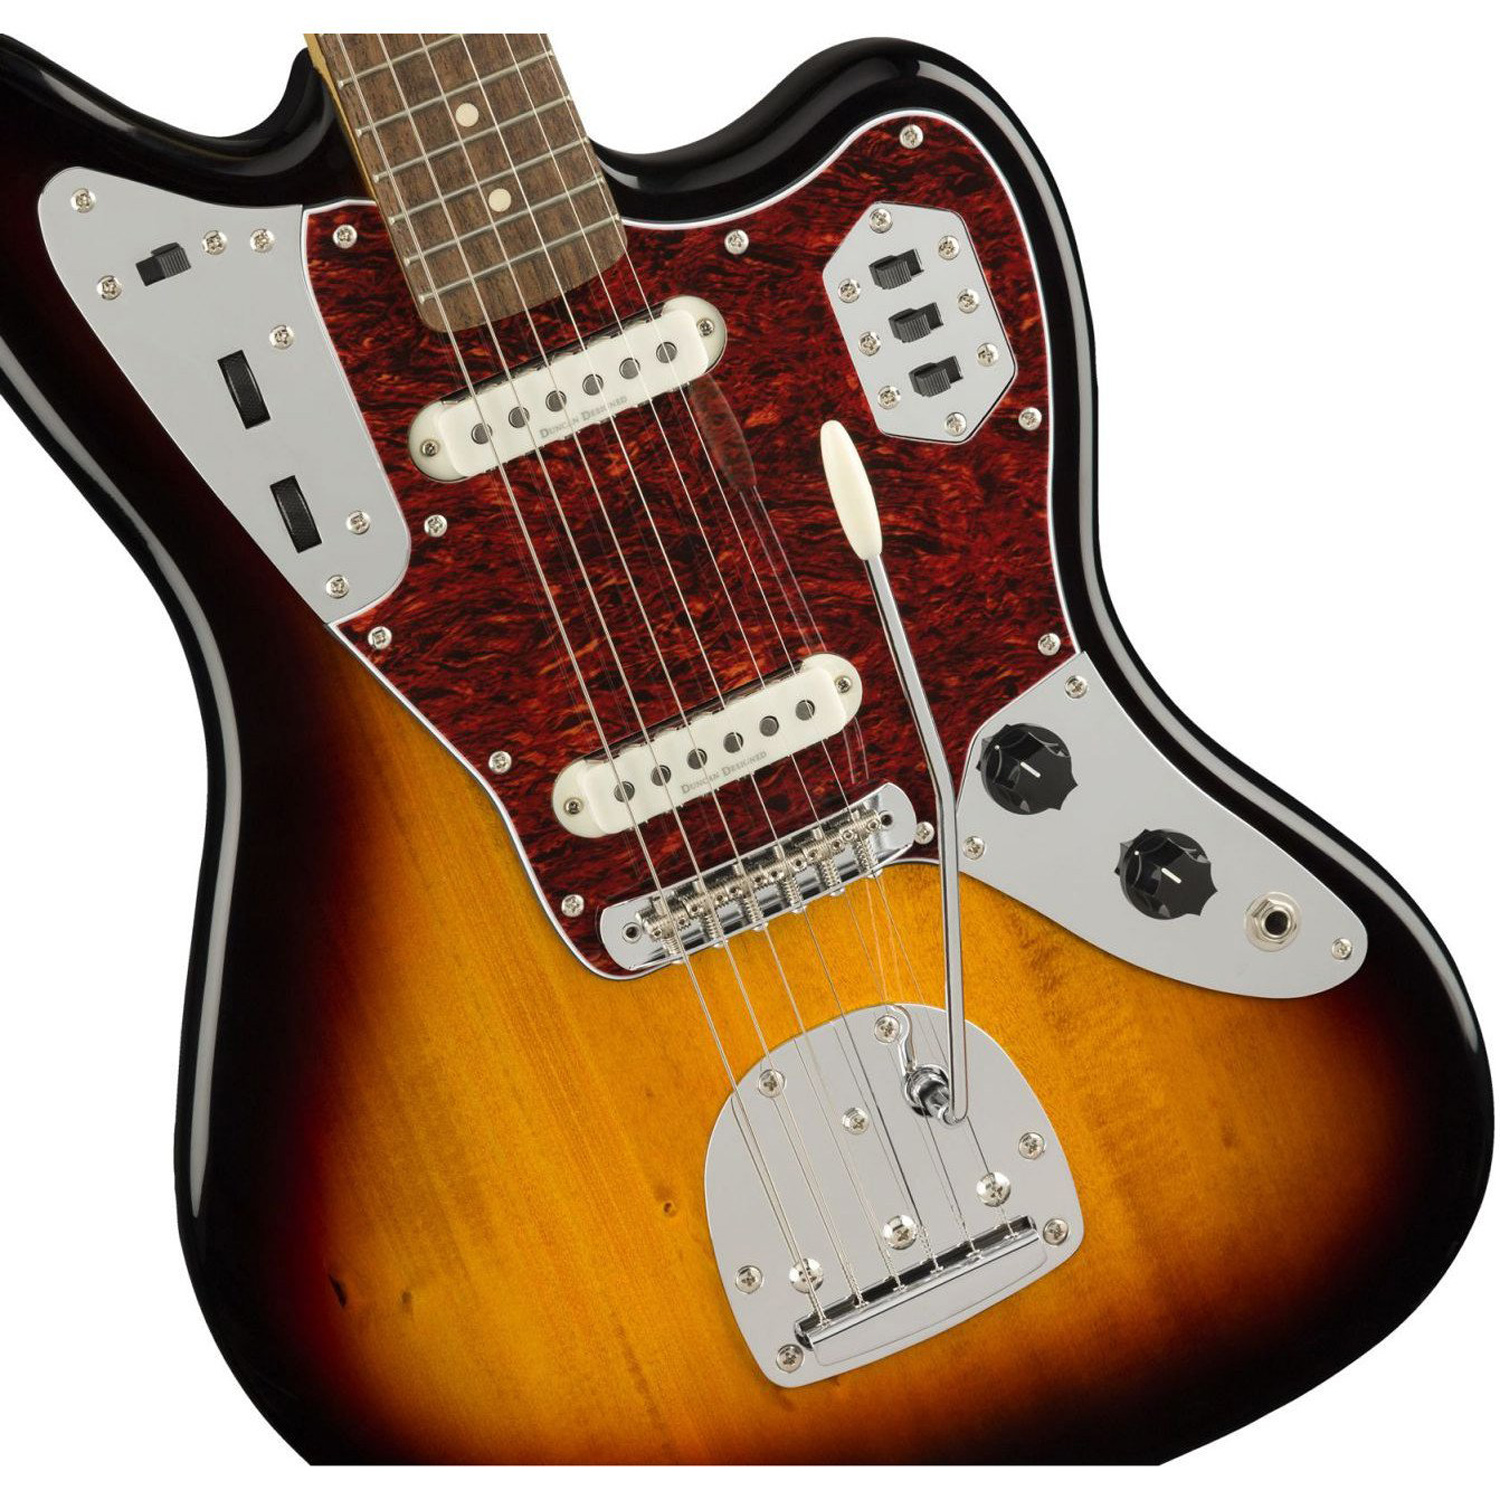 squier vintage modified jaguar 3 tone sunburst music machine musical instruments nz guitars nz. Black Bedroom Furniture Sets. Home Design Ideas